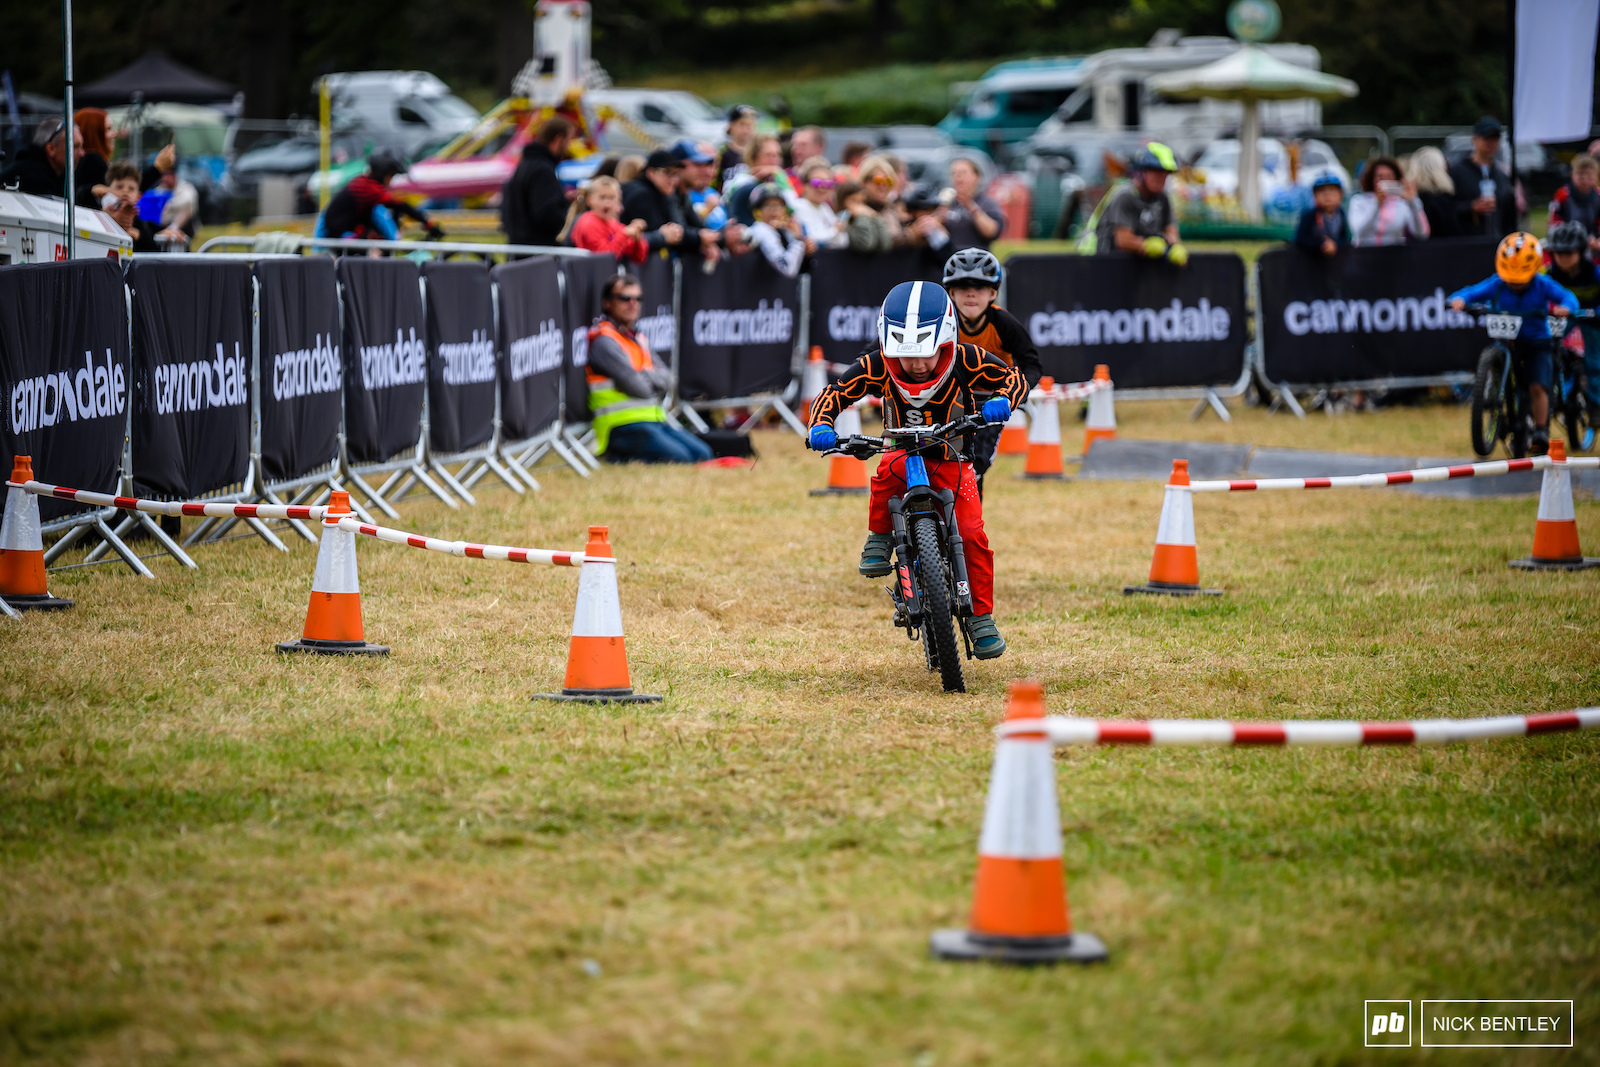 Powering through twists and turns to the finish line in the 4X Quad Eliminator